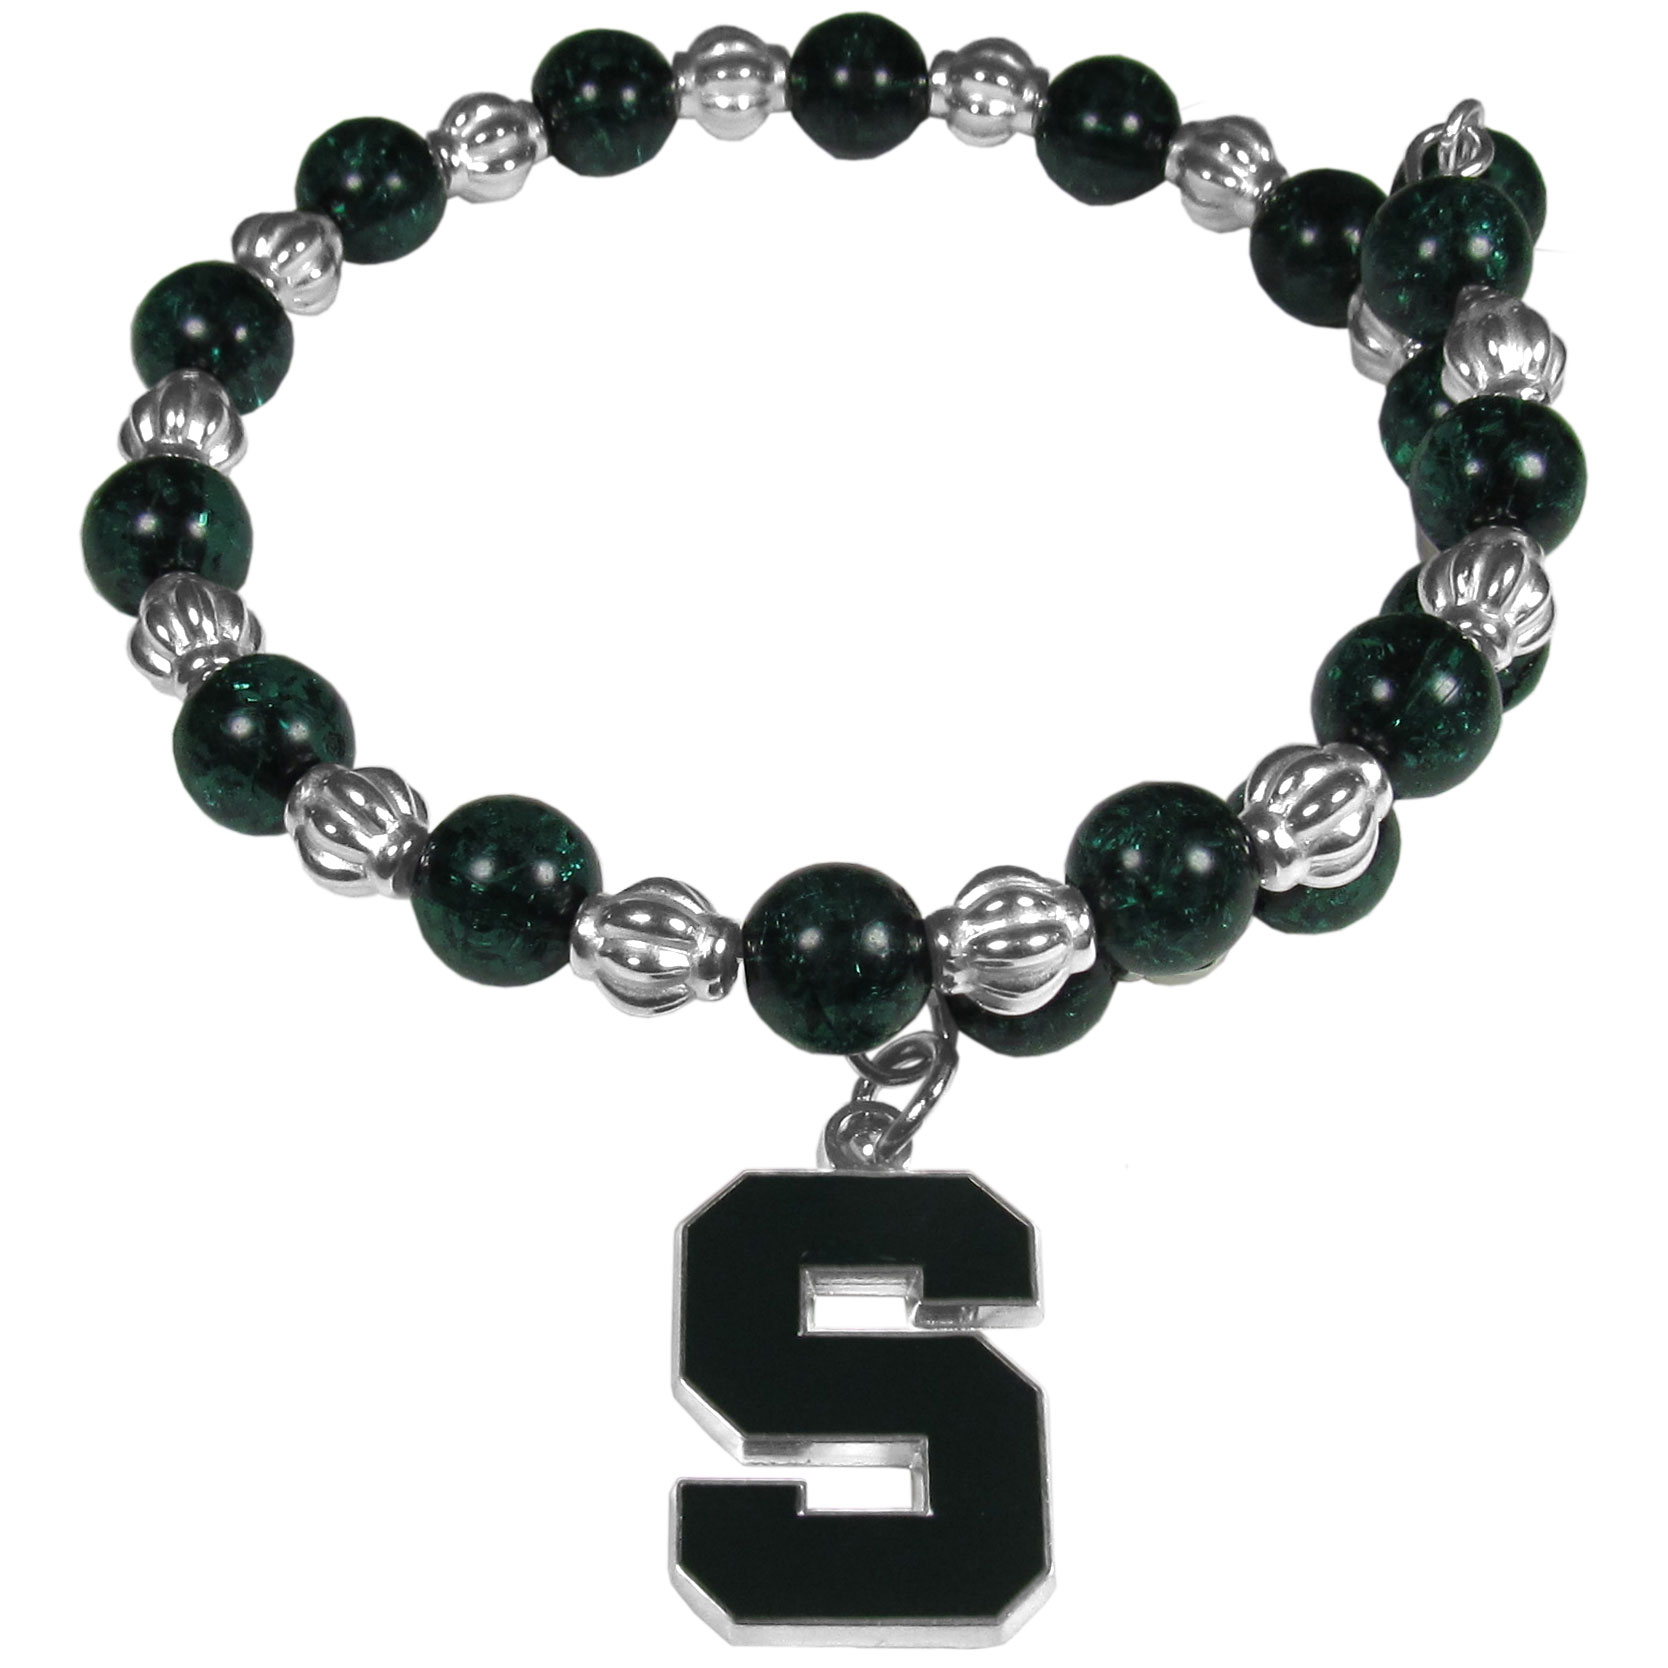 Michigan St. Spartans Bead Memory Wire Bracelet - Our Michigan St. Spartans memory wire bead bracelet is trendy way to show off your love of the game. The double wrap bracelet is completely covered in 7.5 mm crystals that are broken up with silvertoned beads creating a designer look with a sporty twist. The bracelet features a fully cast, metal team charm that has expertly enameled team colors. This fashion jewelry piece is a must-have for the die-hard fan that chic look that can dress up any outfit.